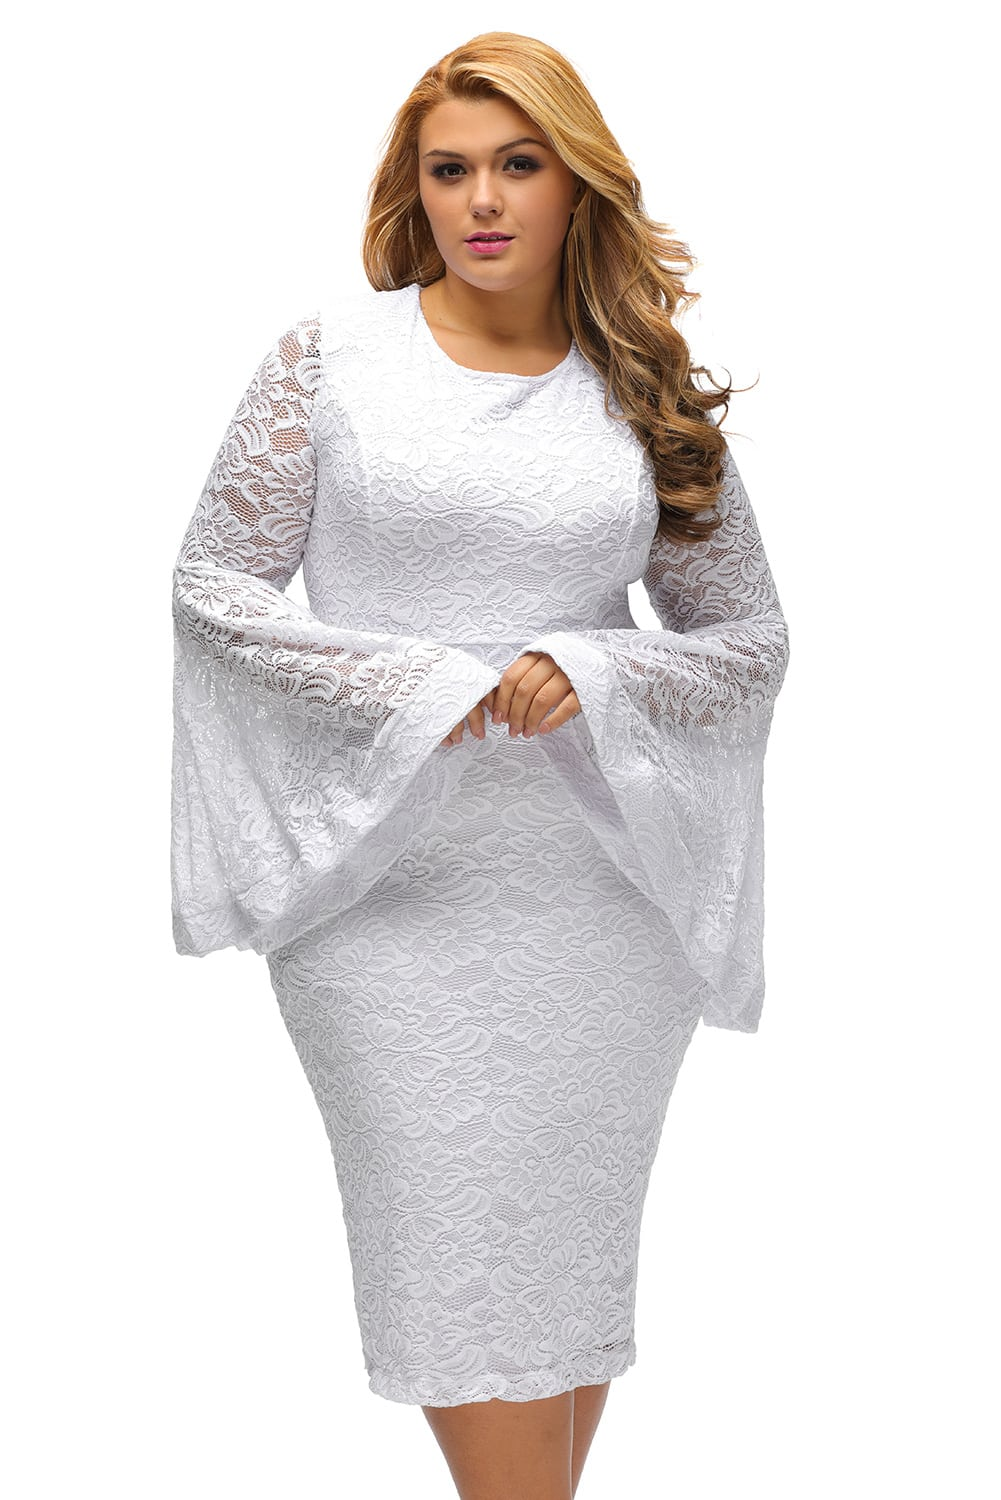 White Dress With Sleeves